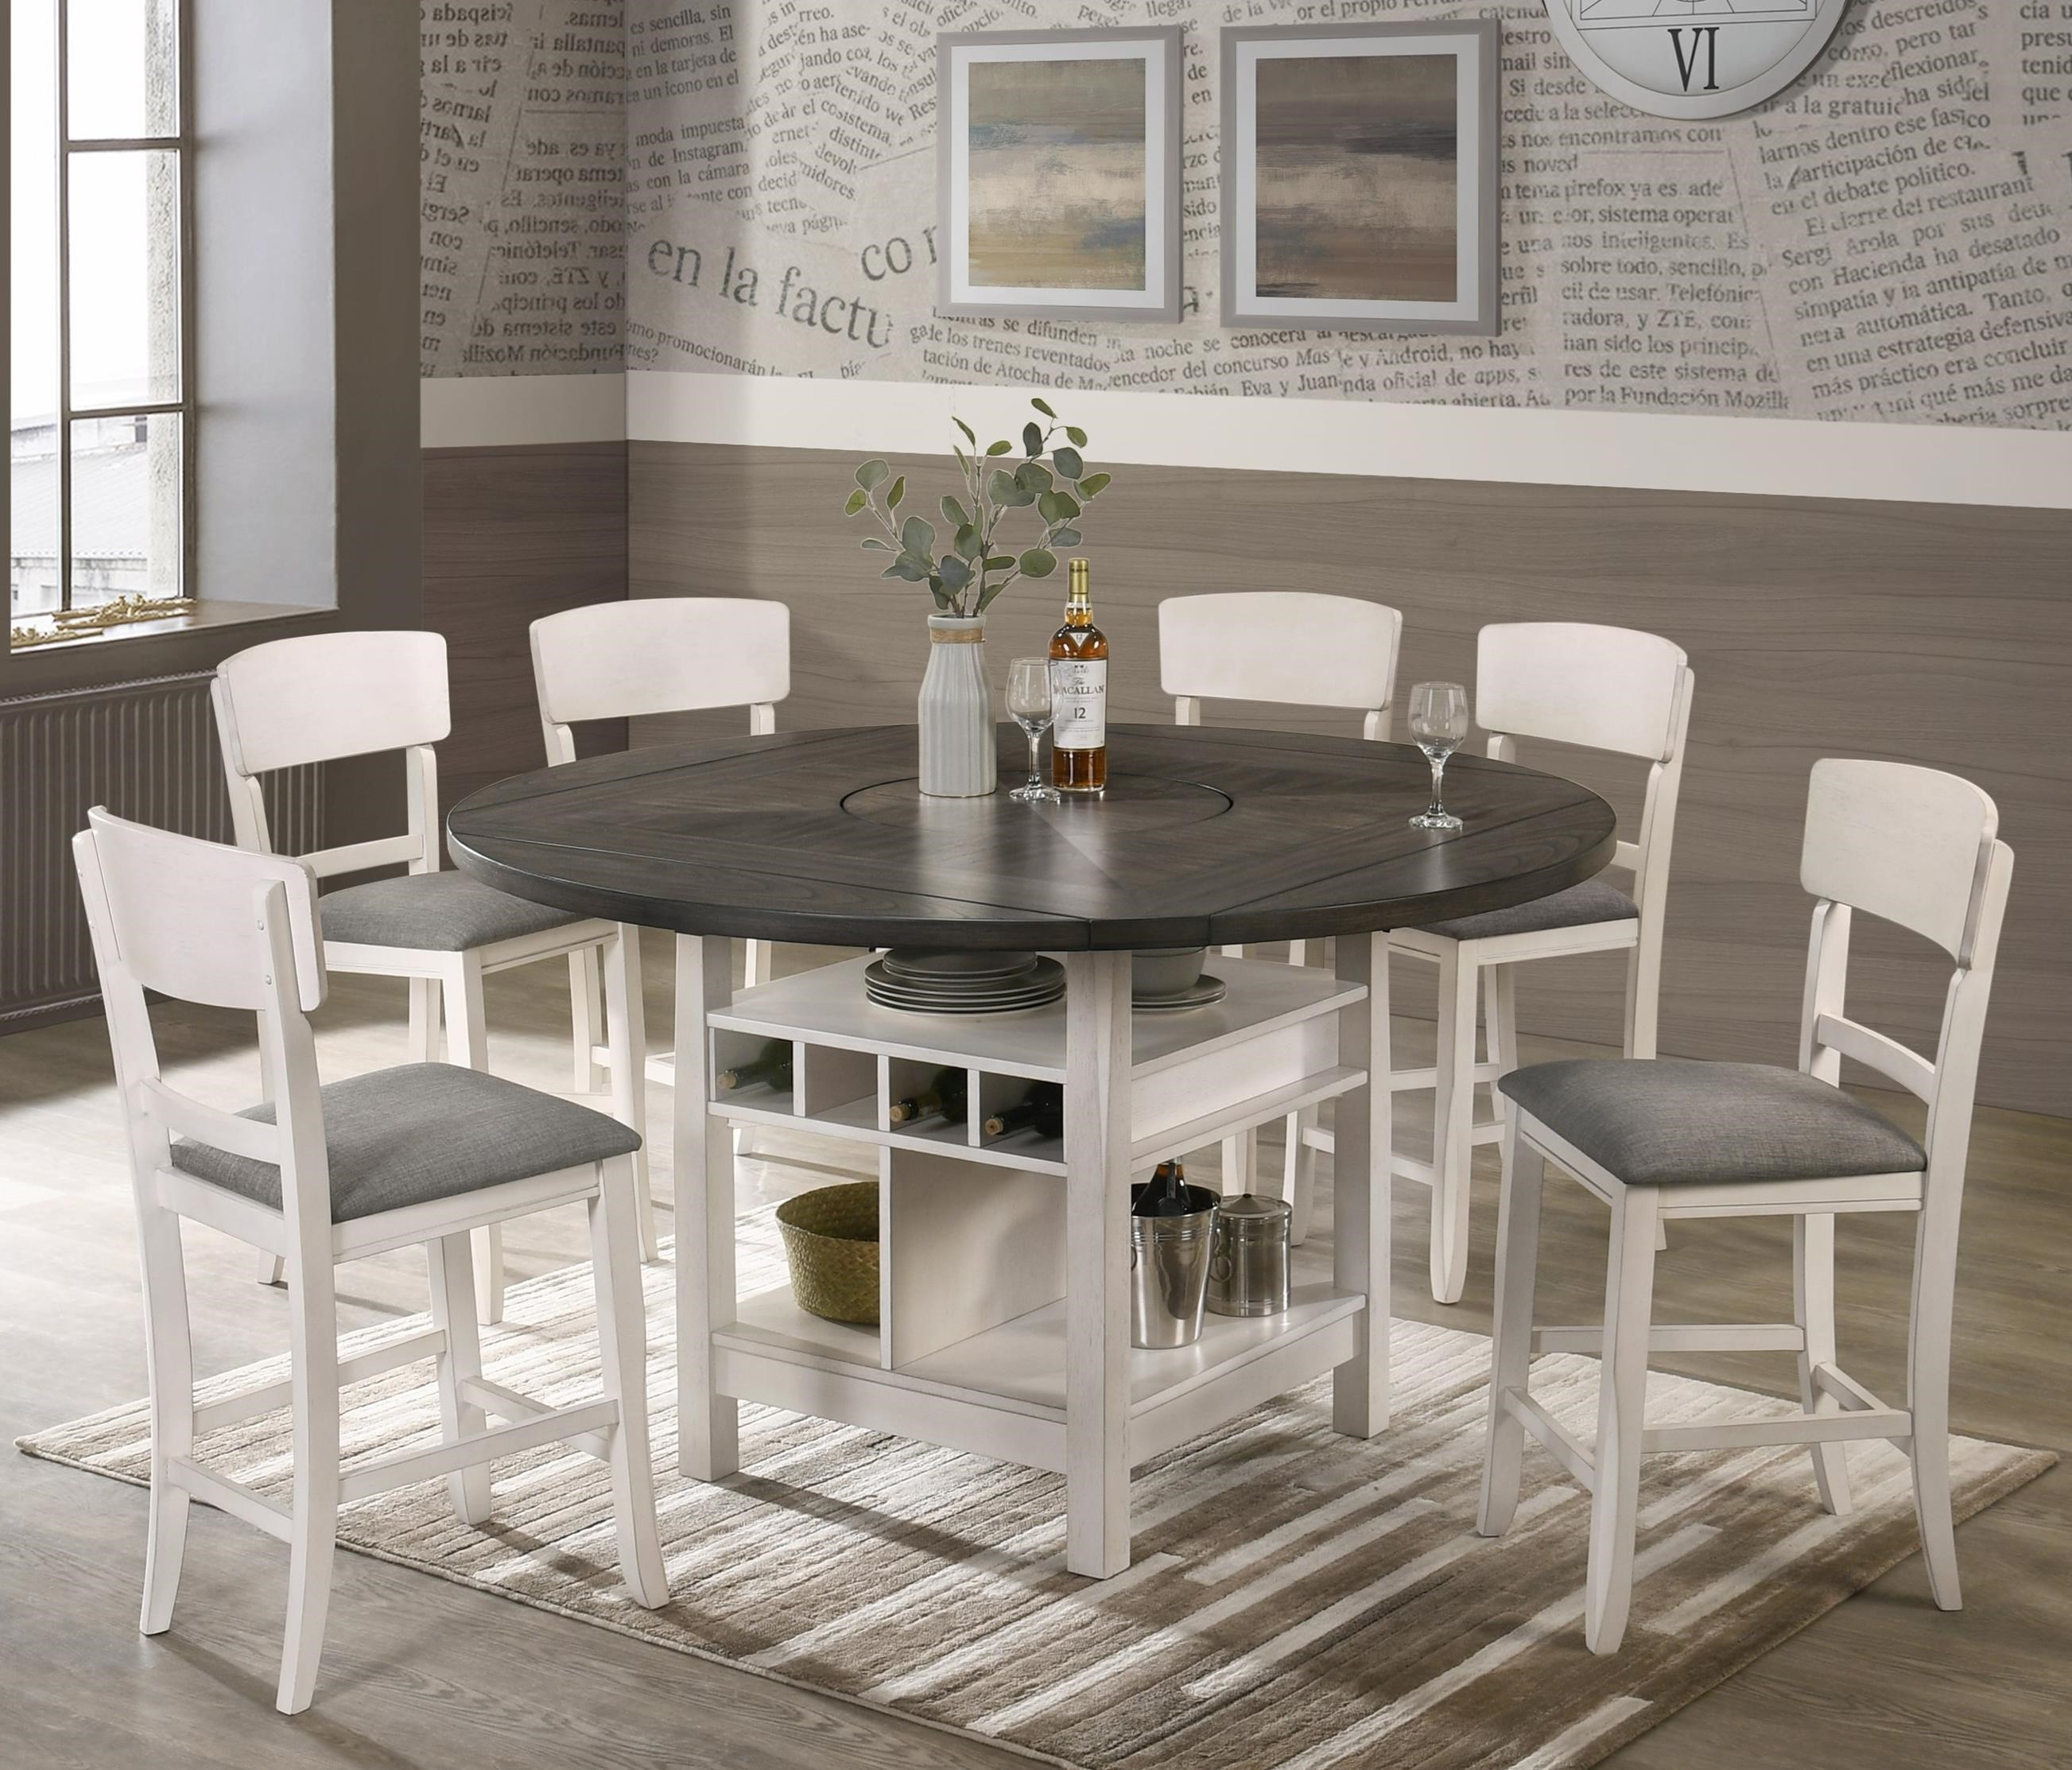 Conner 7 Piece Table and Chair Set by Crown Mark at Northeast Factory Direct